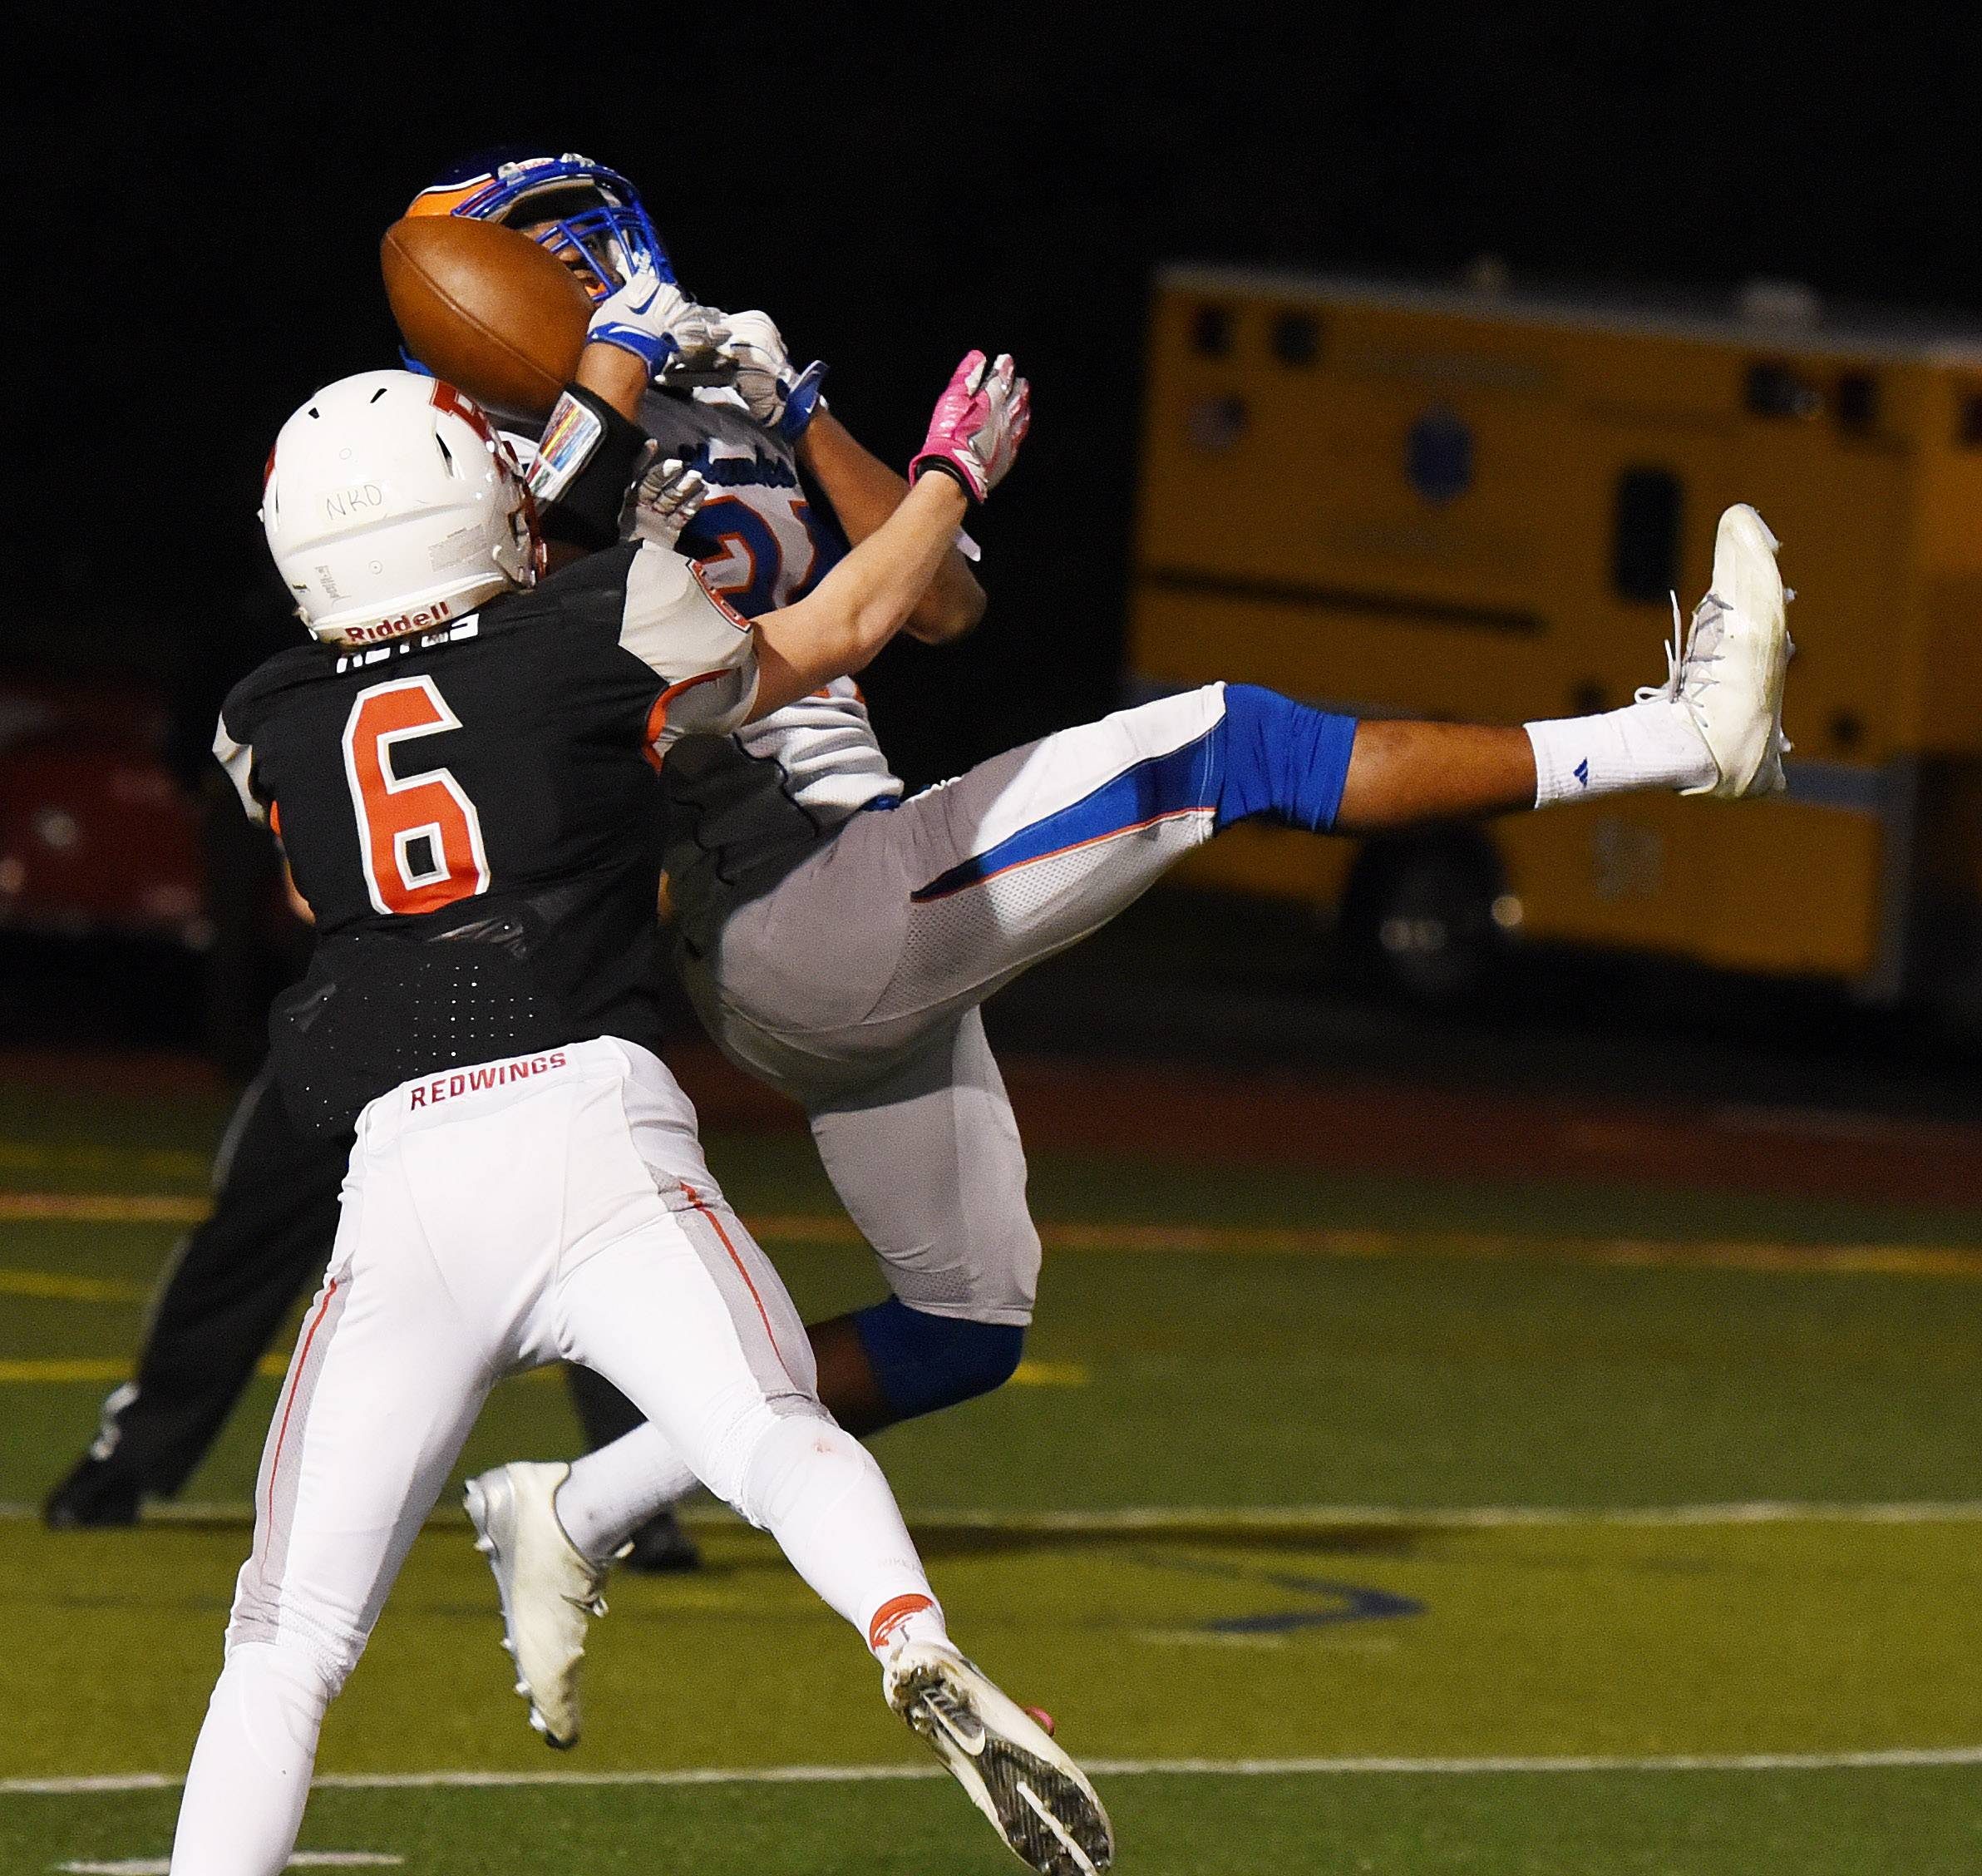 Benet's Nicholas Keyes (6) and Hoffman Estates' Trevon Hall (24) vie for a pass during the Hoffman Estates at Benet football game Friday.